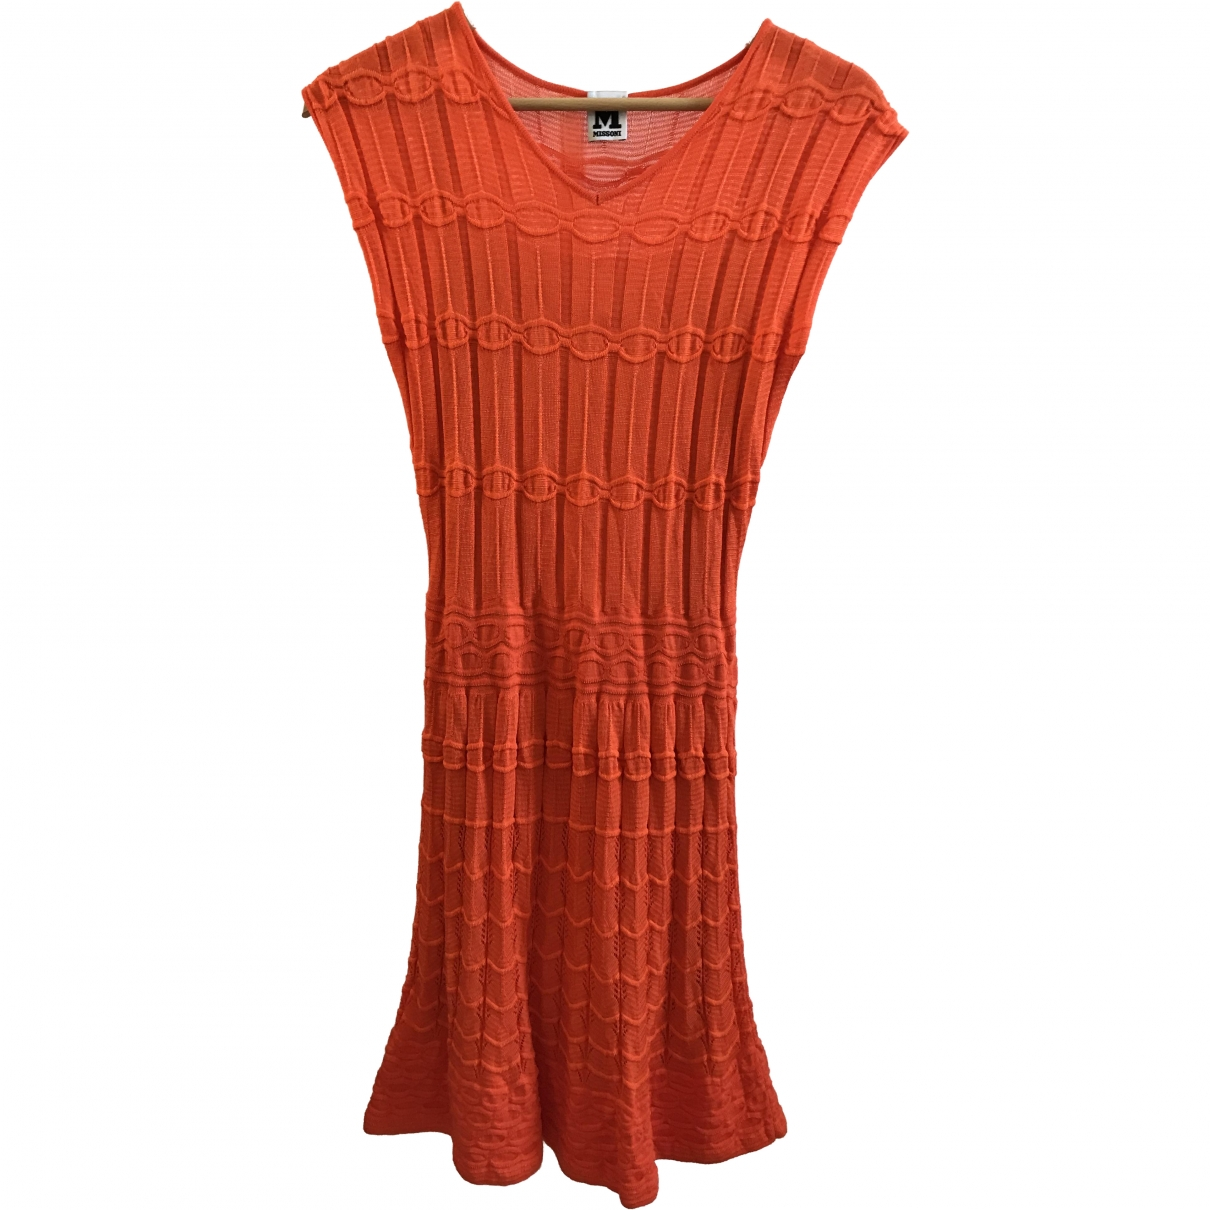 M Missoni \N Orange Wool dress for Women 36 FR